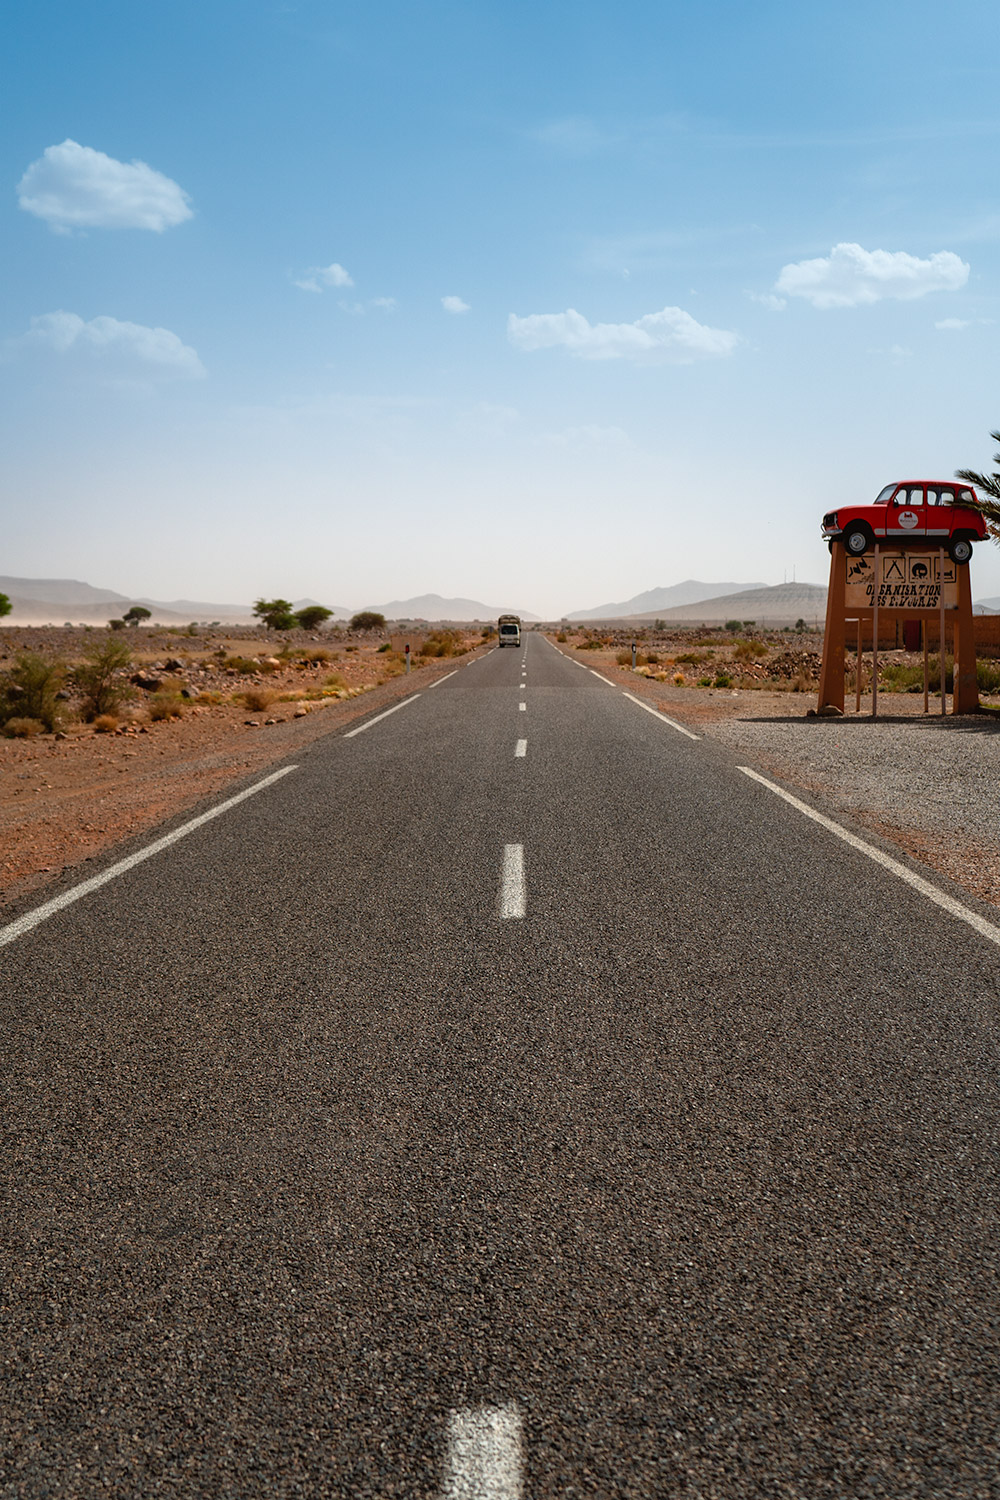 The road to the desert in Morocco